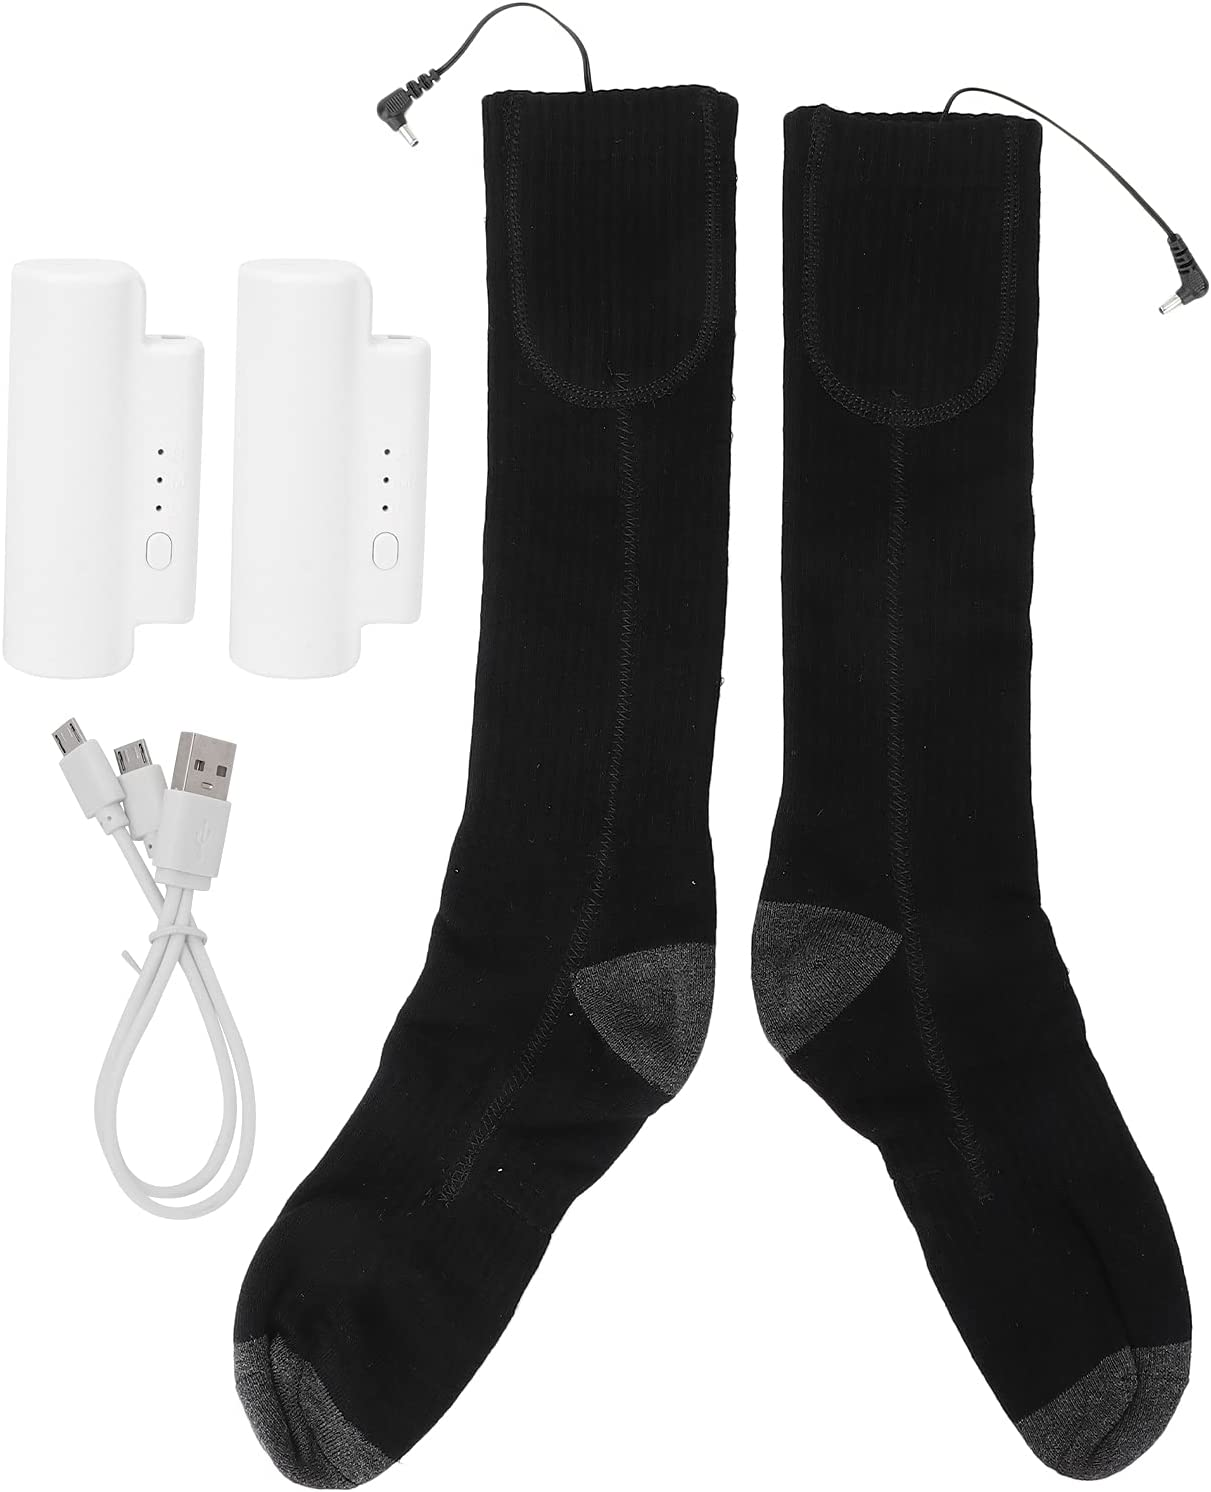 01 Electric Thermal Socks Heated Soft 2021 spring and summer new for Washable Finally resale start Cotton